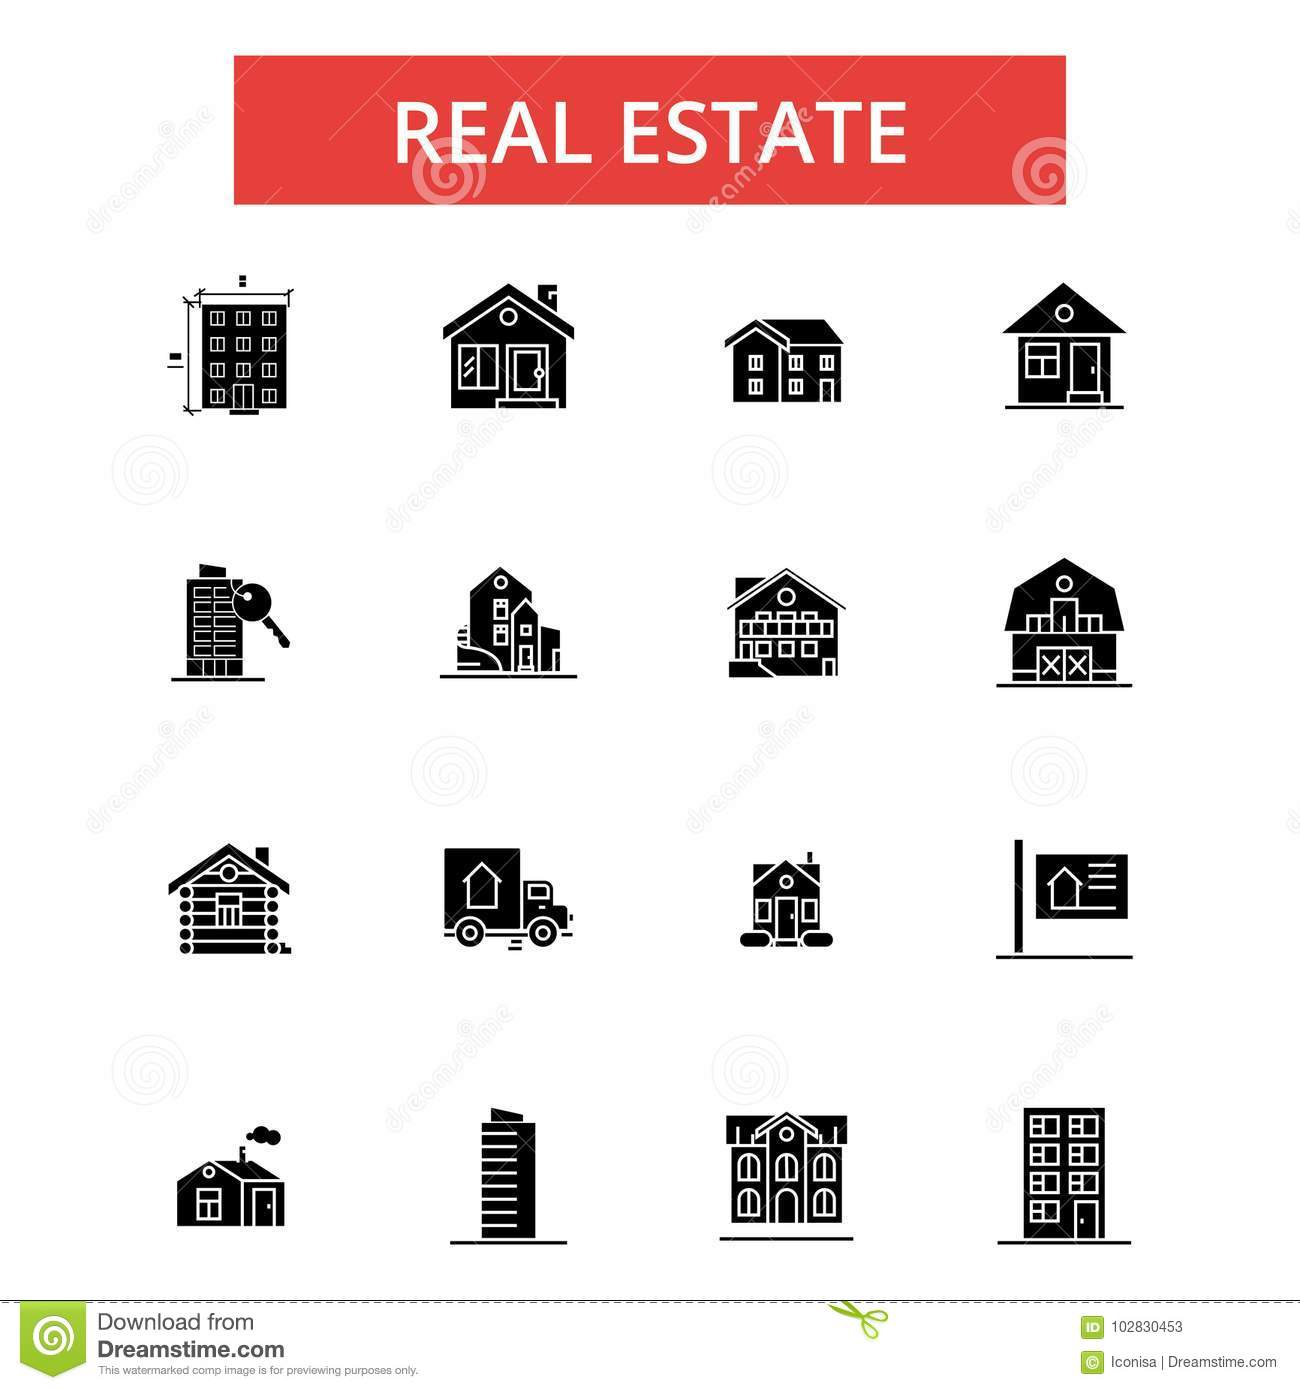 Real Estate Illustration Thin Line Icons Linear Flat Signs Vector